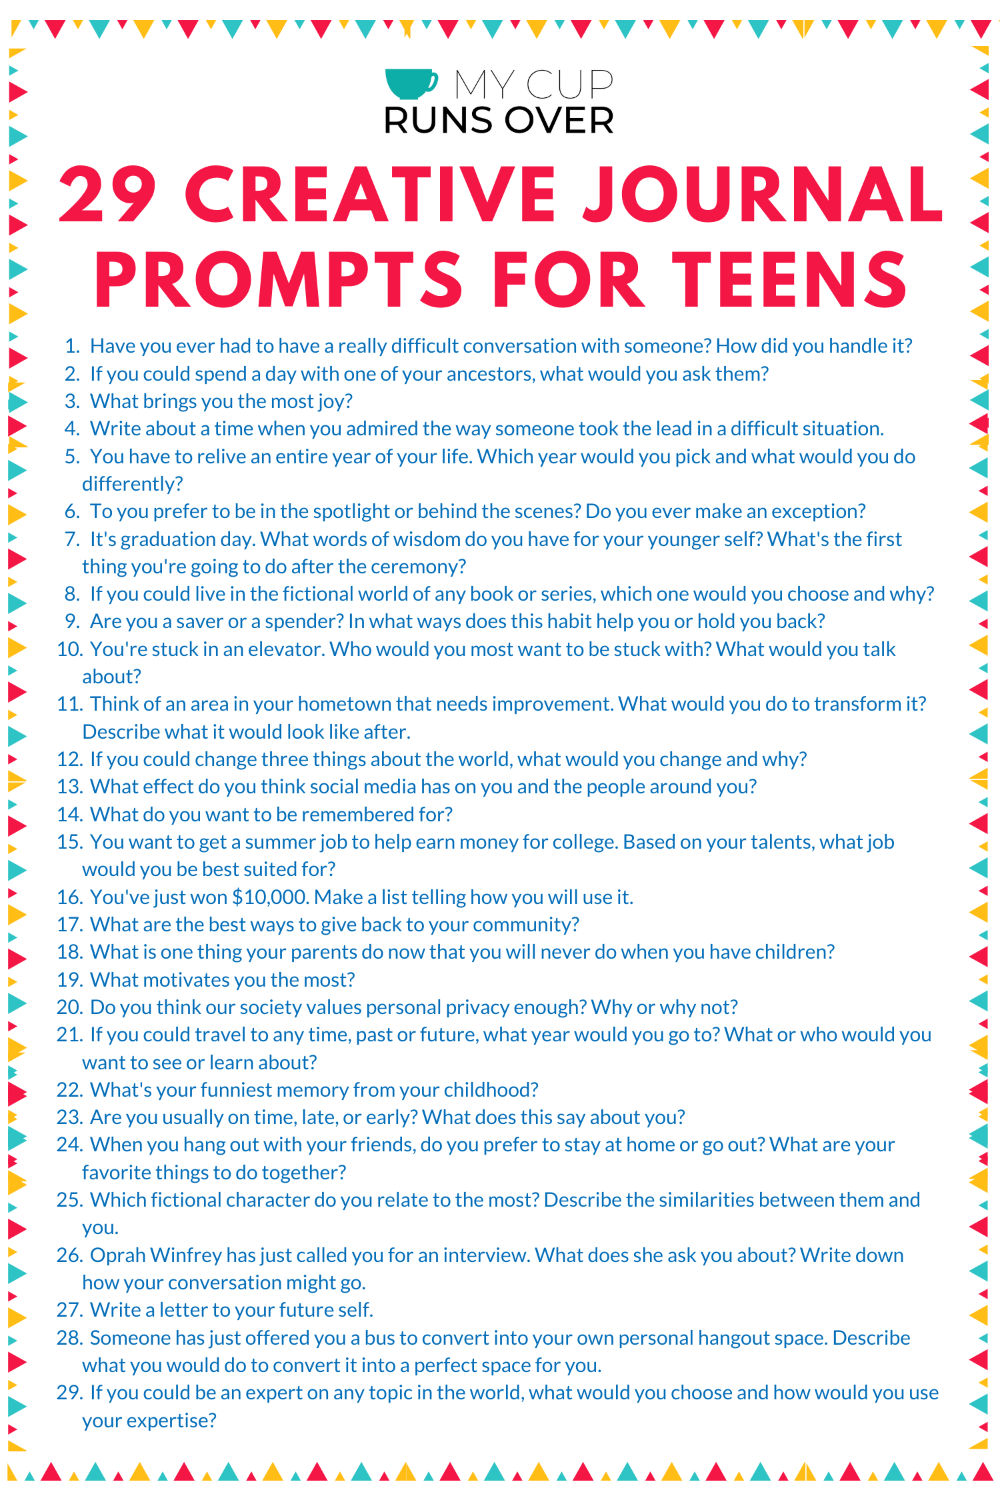 29 Creative Journal Prompts for Teens: Fun Prompts to Get Them Writing